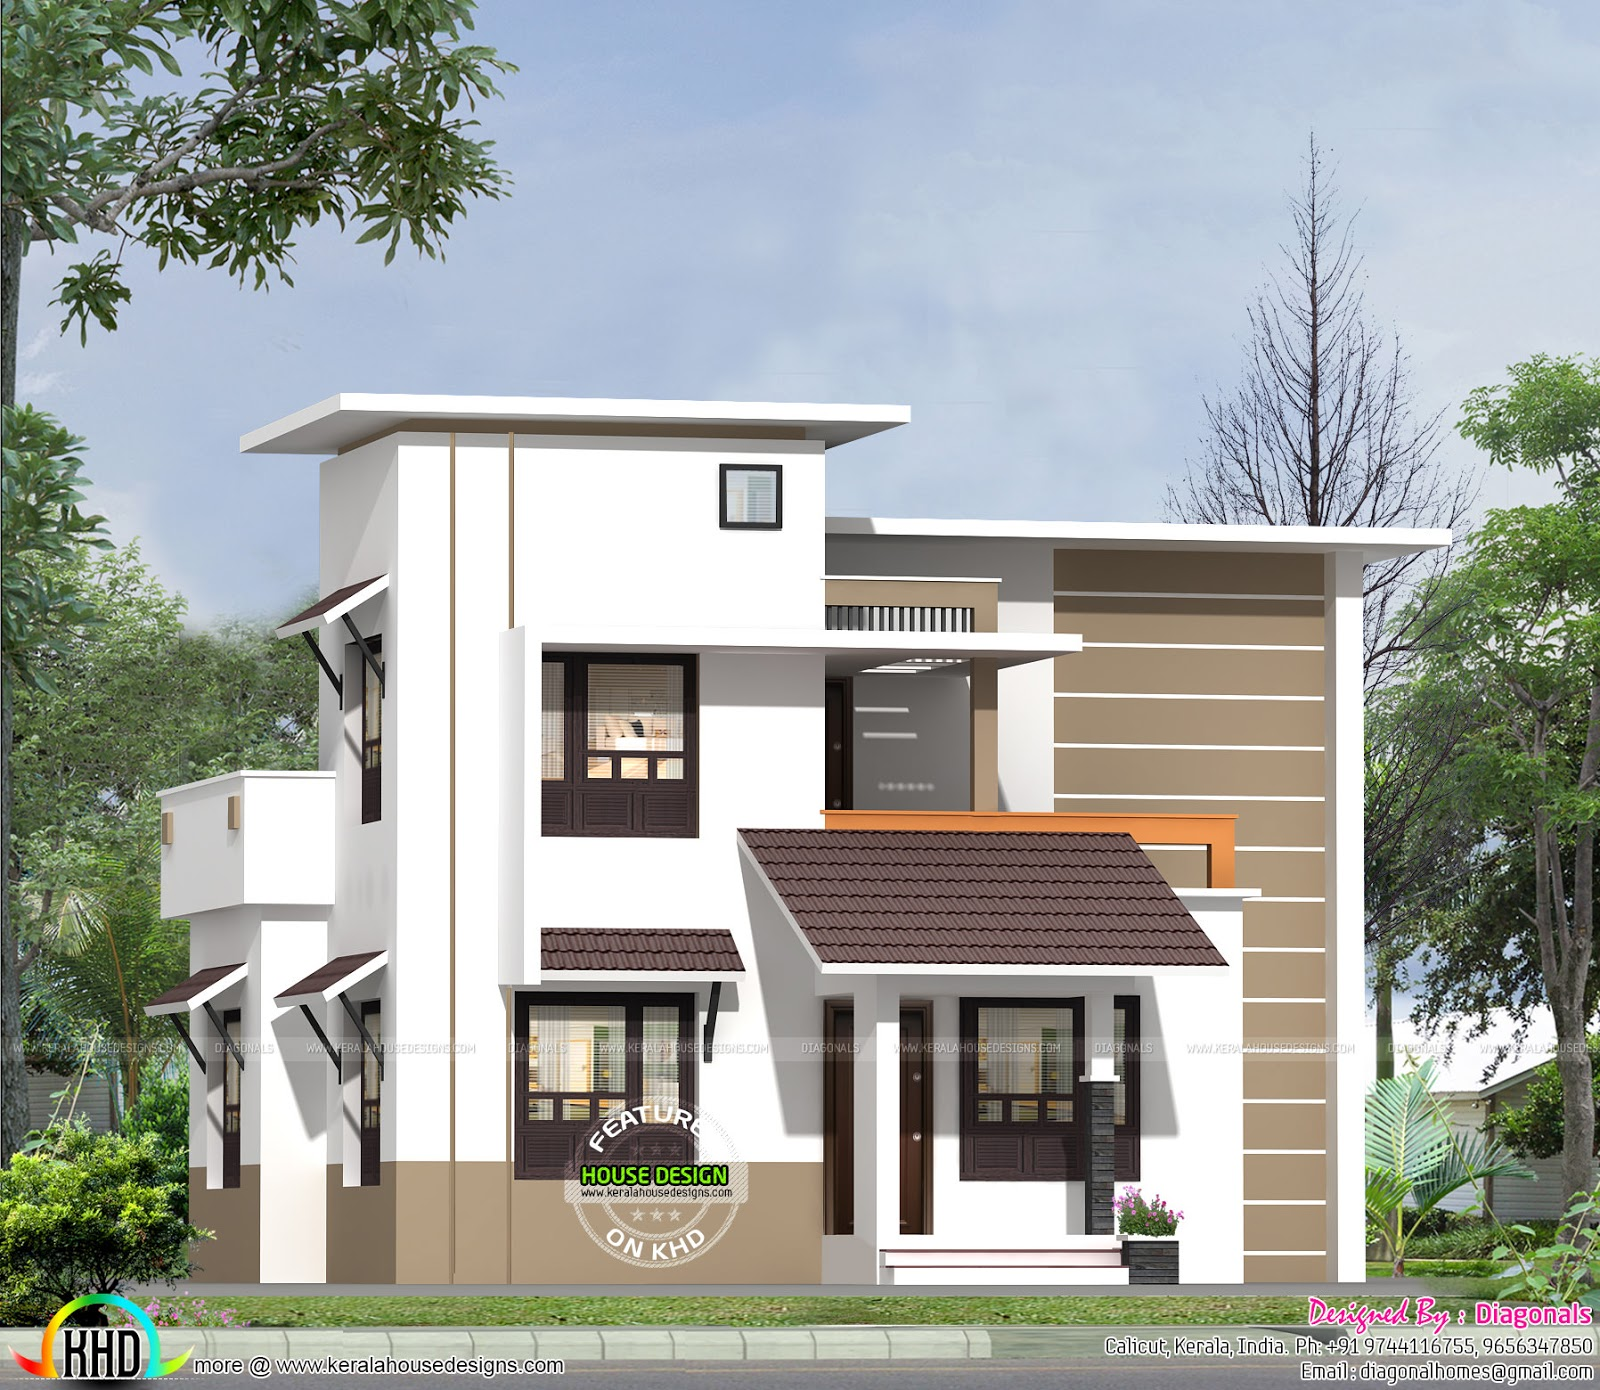 Affordable low cost home kerala home design and floor plans for Low budget home plans